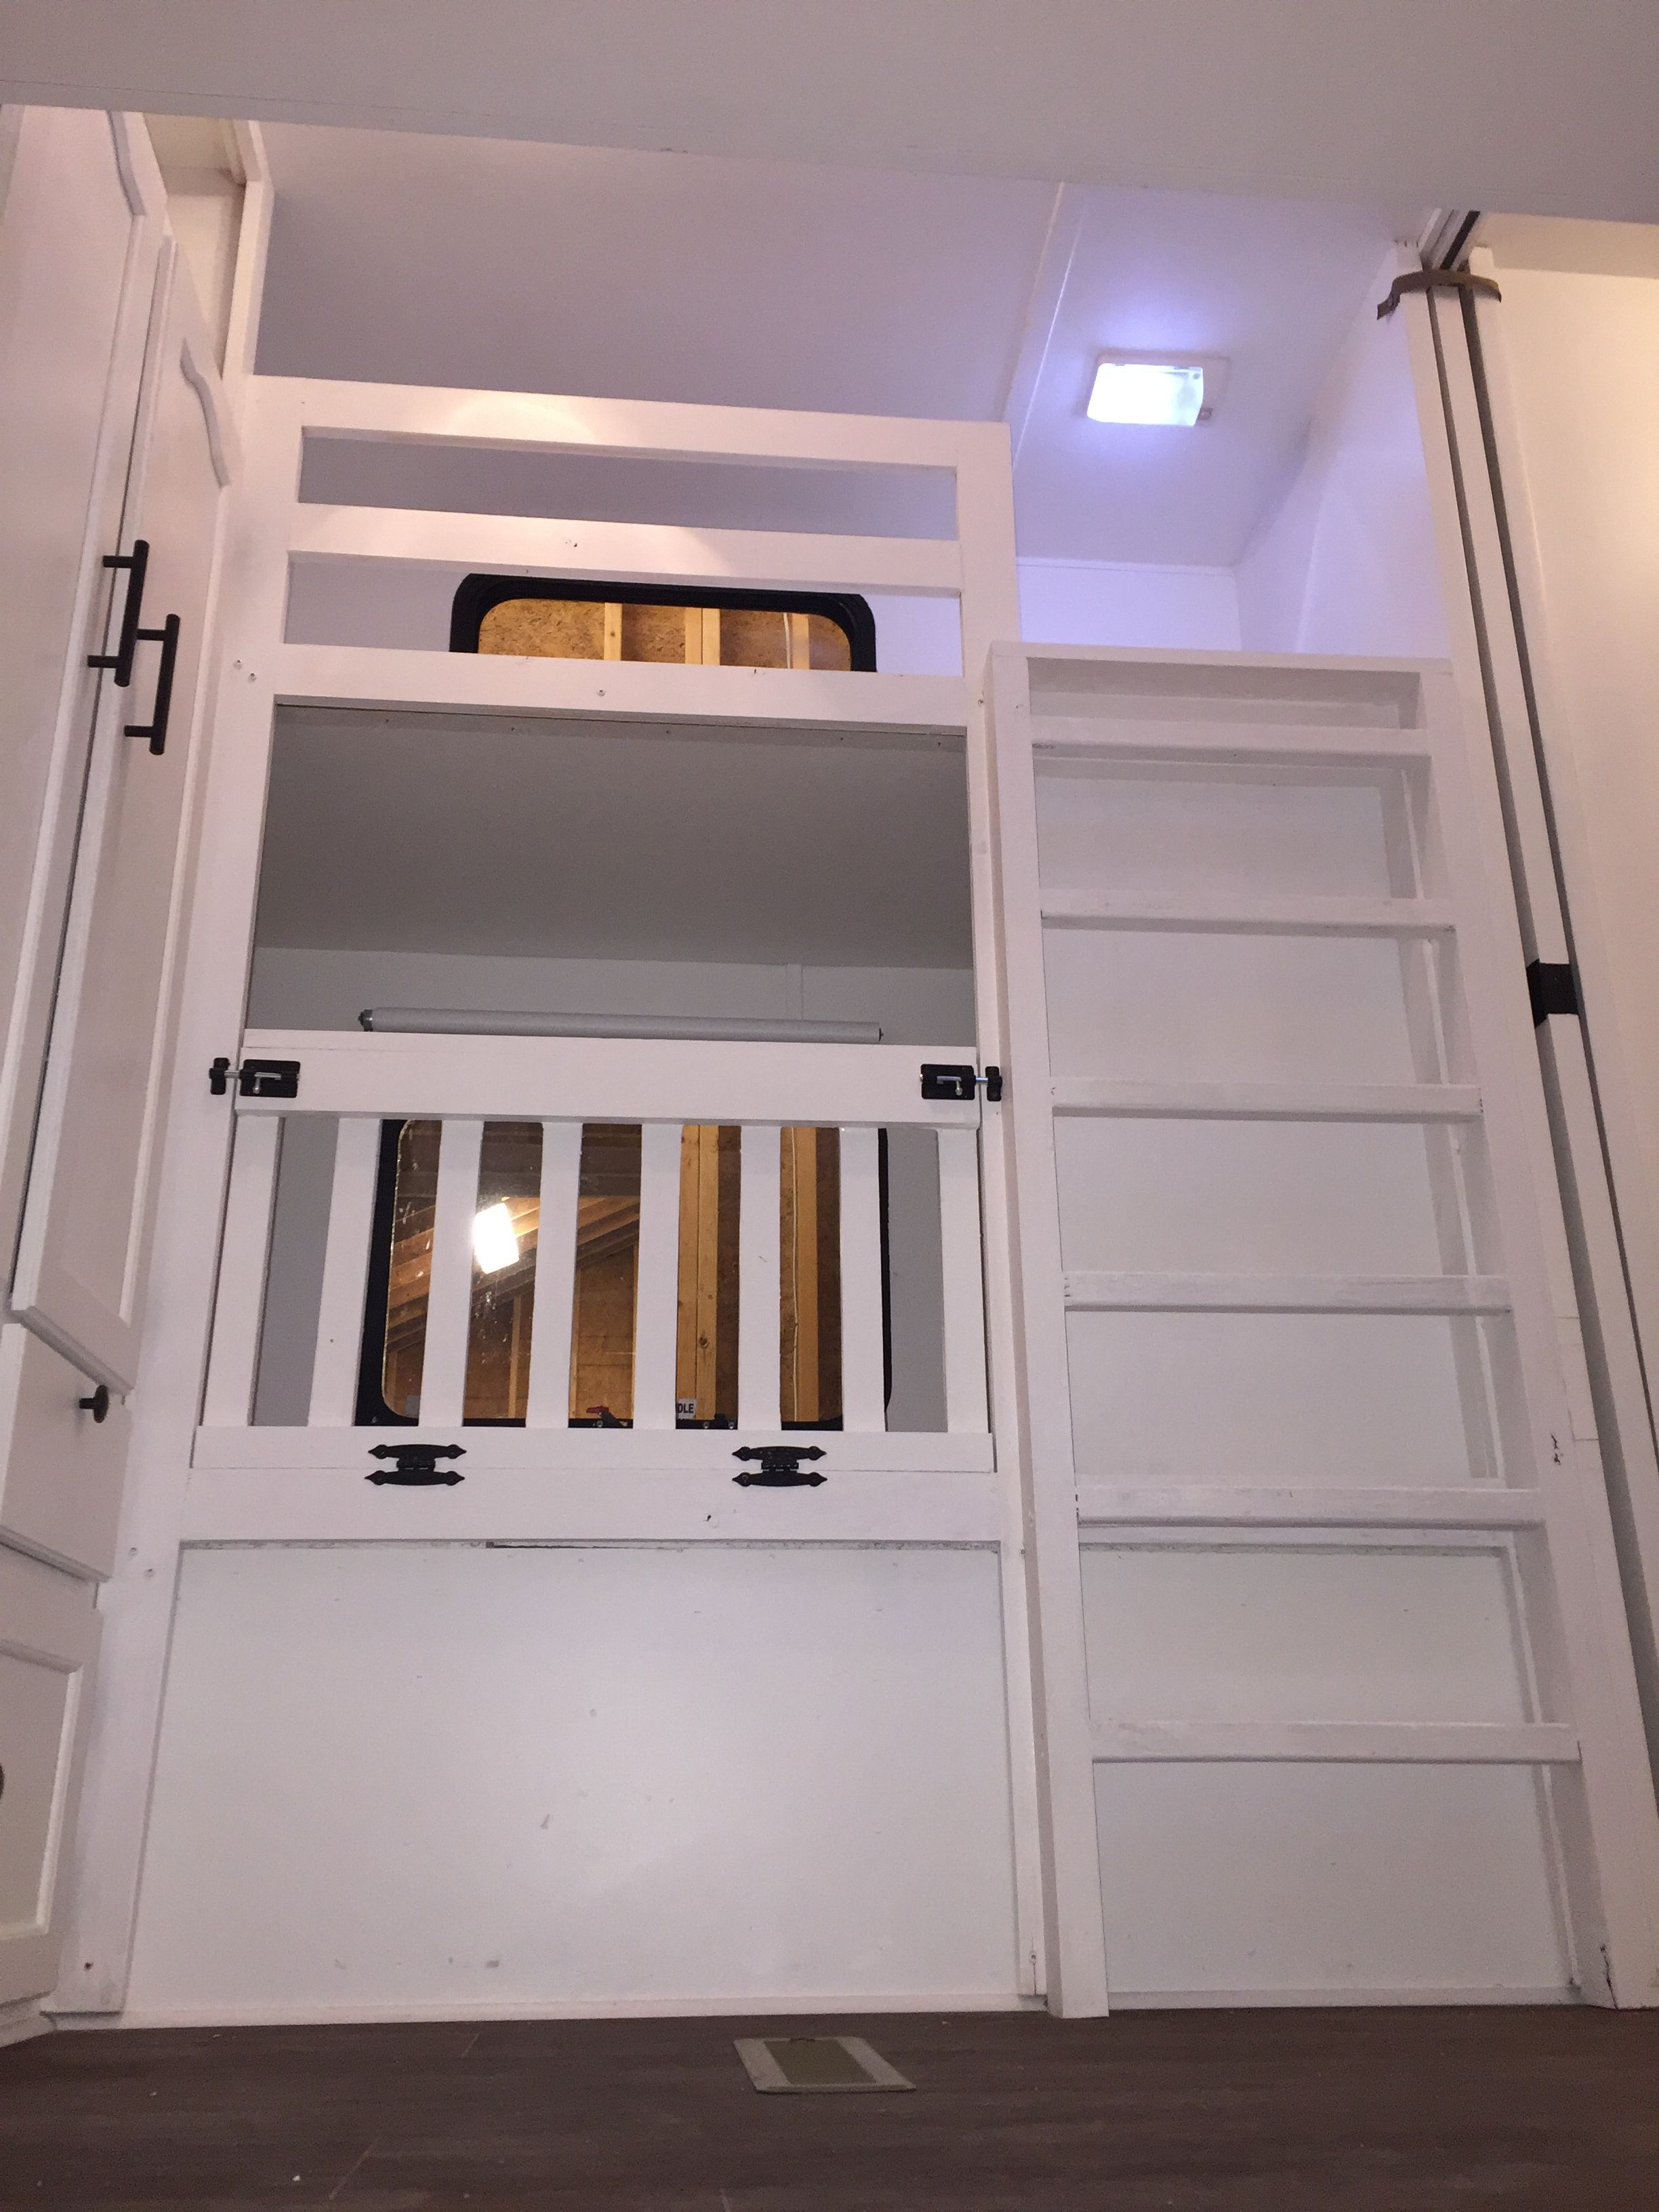 Pin by Annie on RV bunk crib conversion Bunk beds, Bed